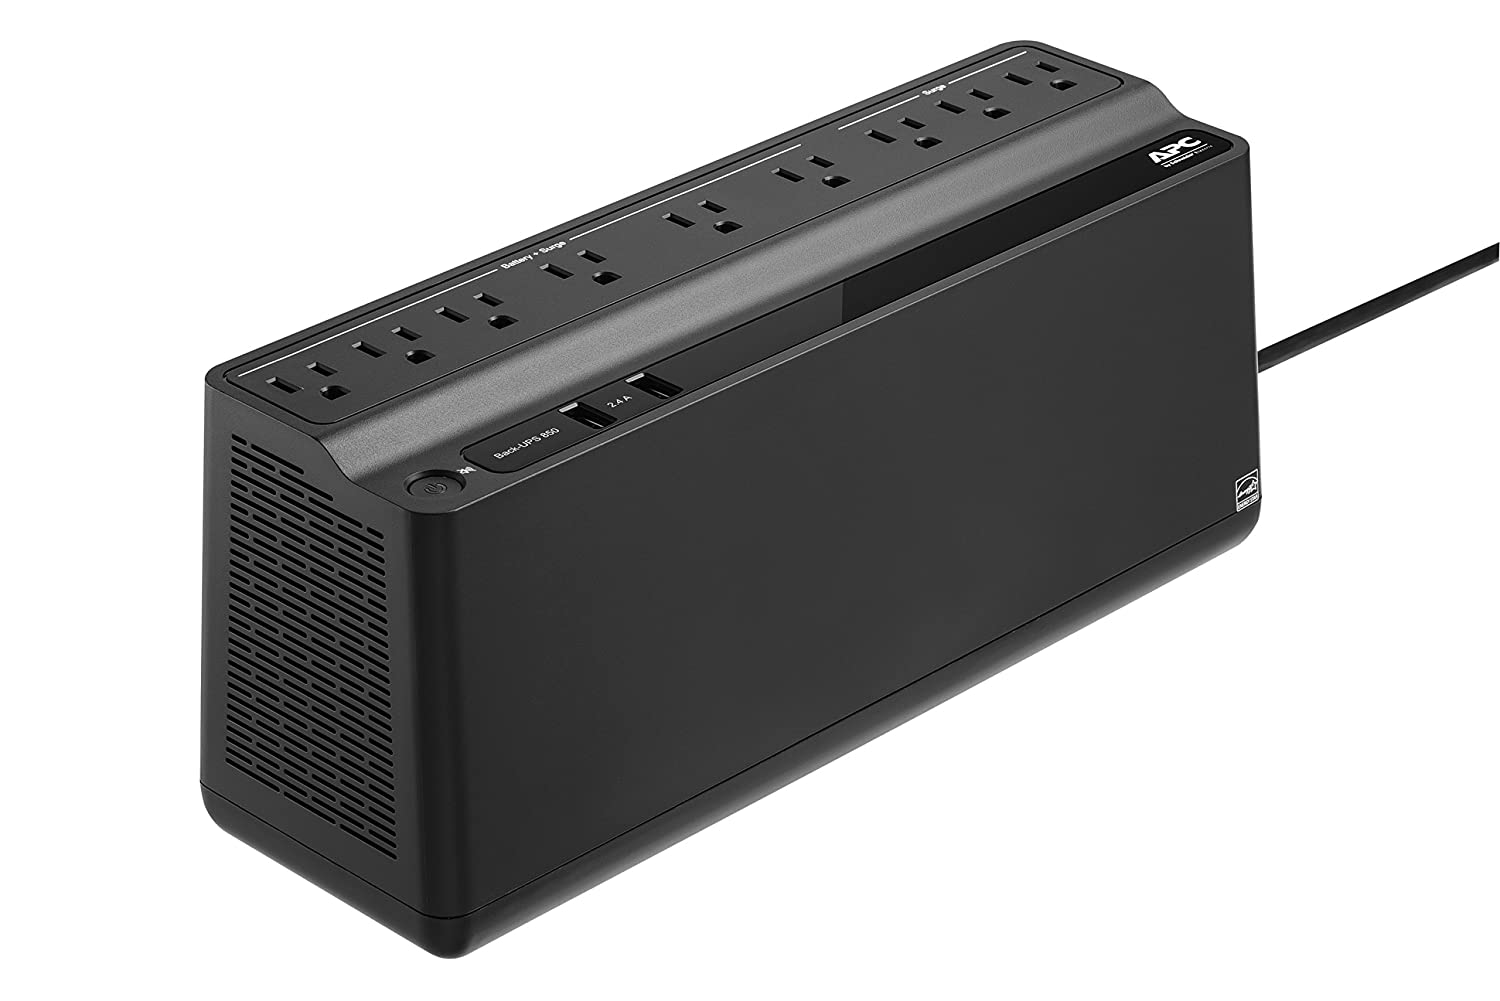 APC Back-UPS 650VA UPS Battery Backup & Surge Protector (BE650G) - BE650G1 Schneider Electric Power Equipment